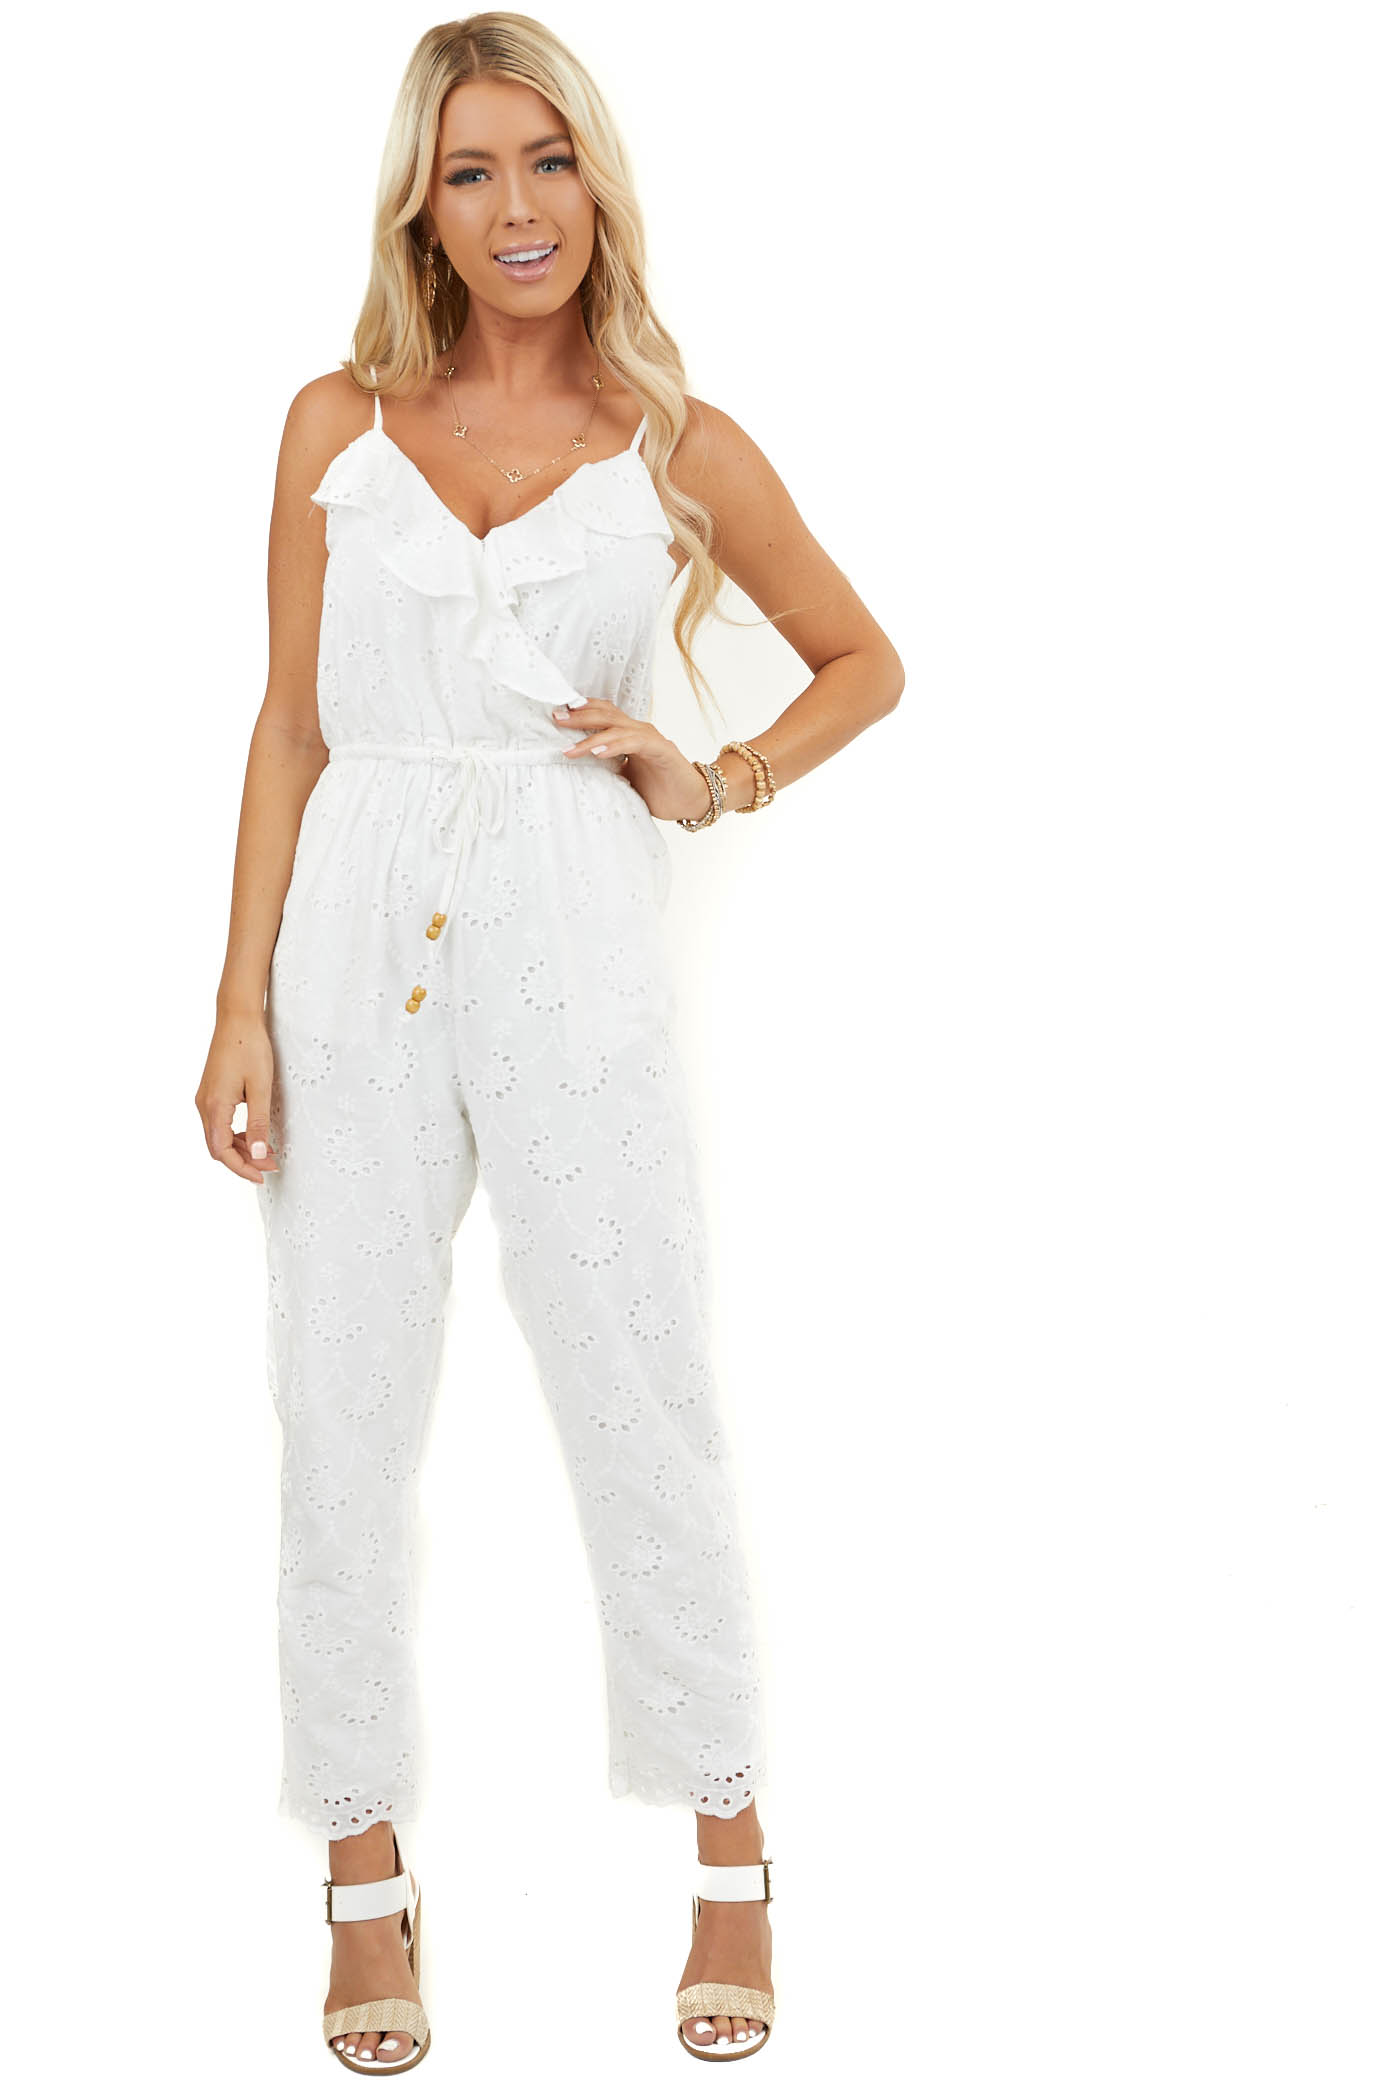 Off White Floral Eyelet Lace Surplice Sleeveless Jumpsuit